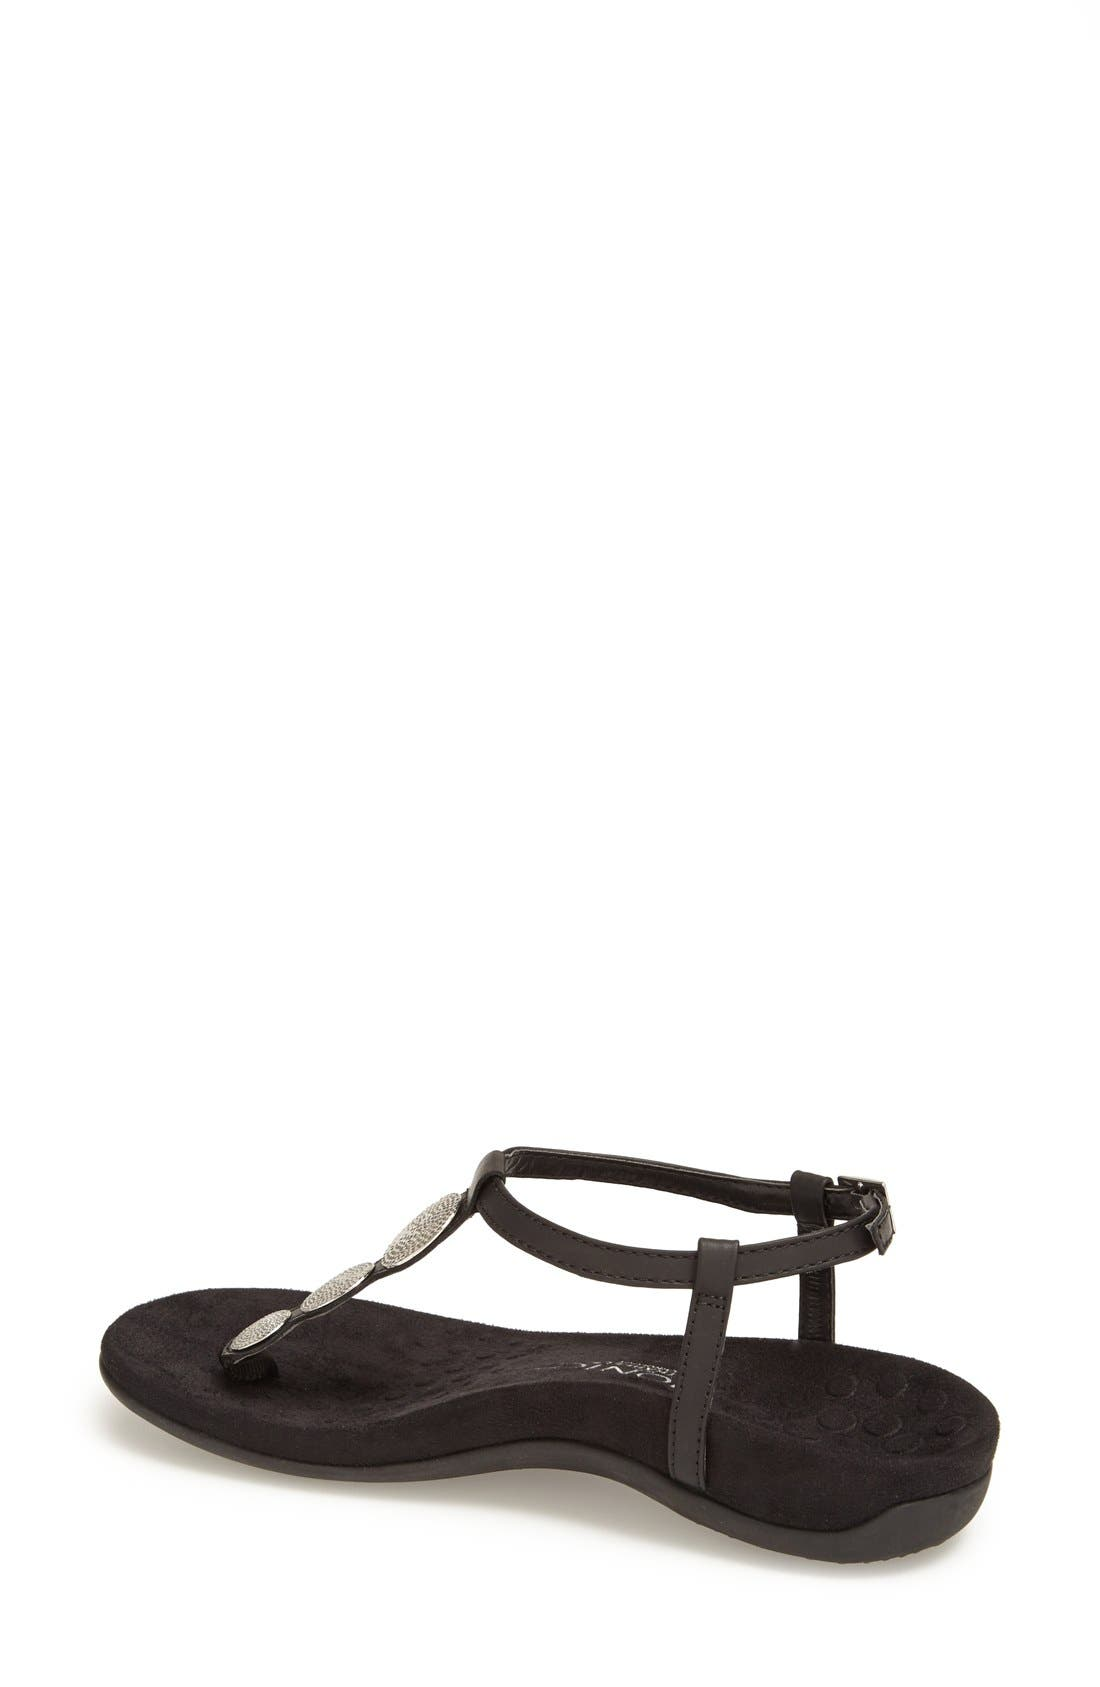 Alternate Image 2  - Vionic 'Lizbeth' Thong Sandal (Women)